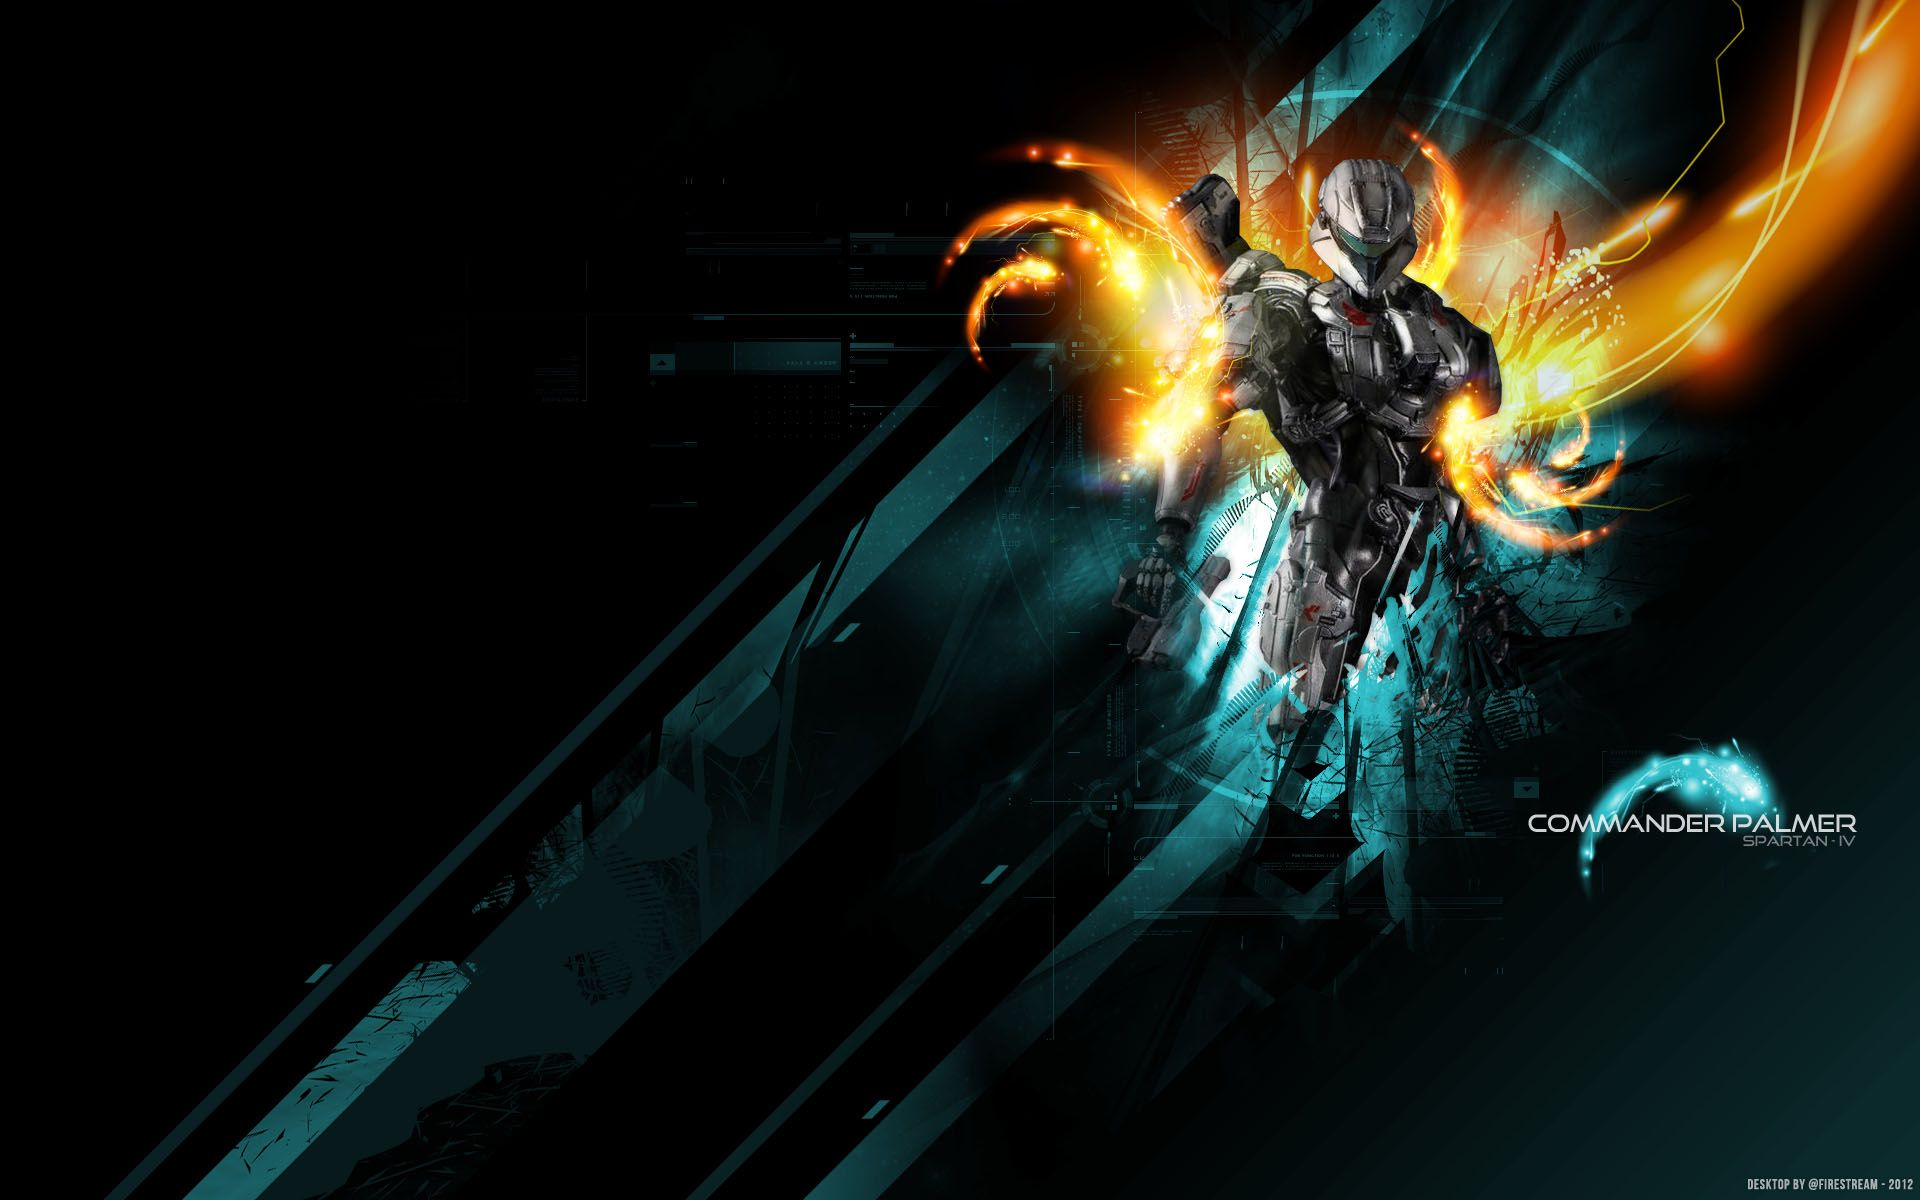 Halo 4 wallpaper video games pinterest video games halo 4 wallpaper voltagebd Image collections